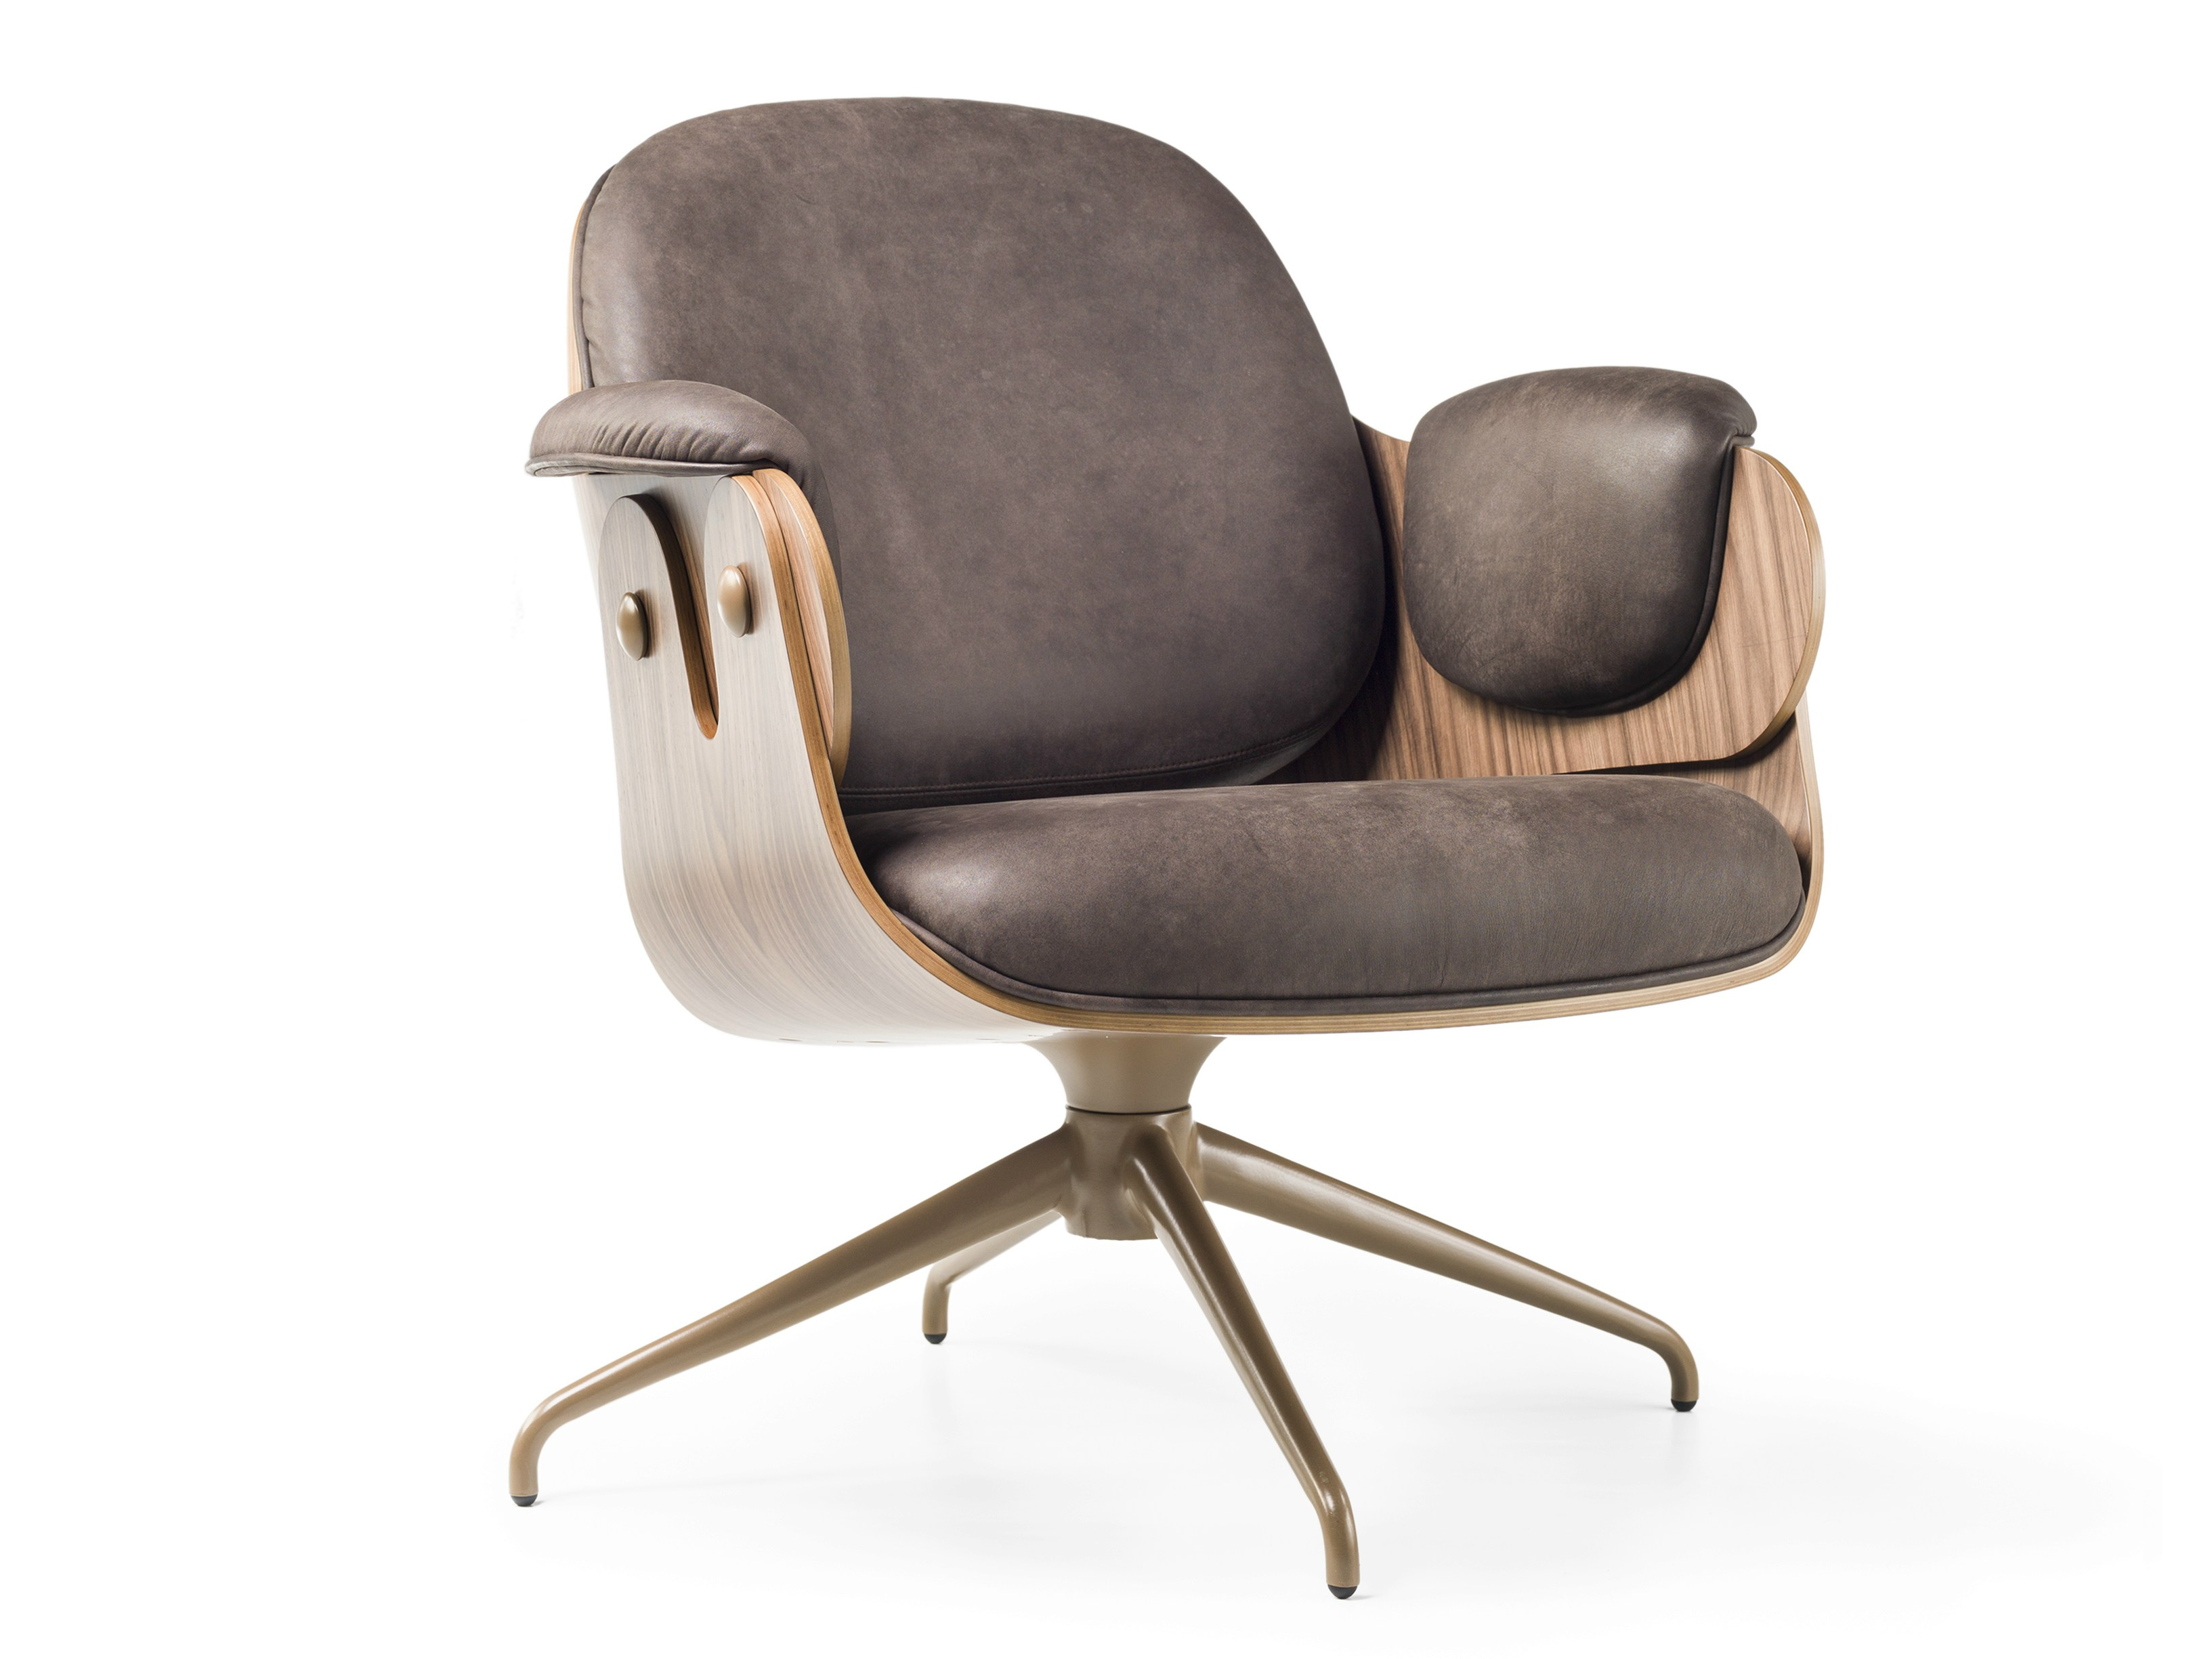 swivel chair price in bd human touch massage review easy with 4 spoke base low lounger showtime